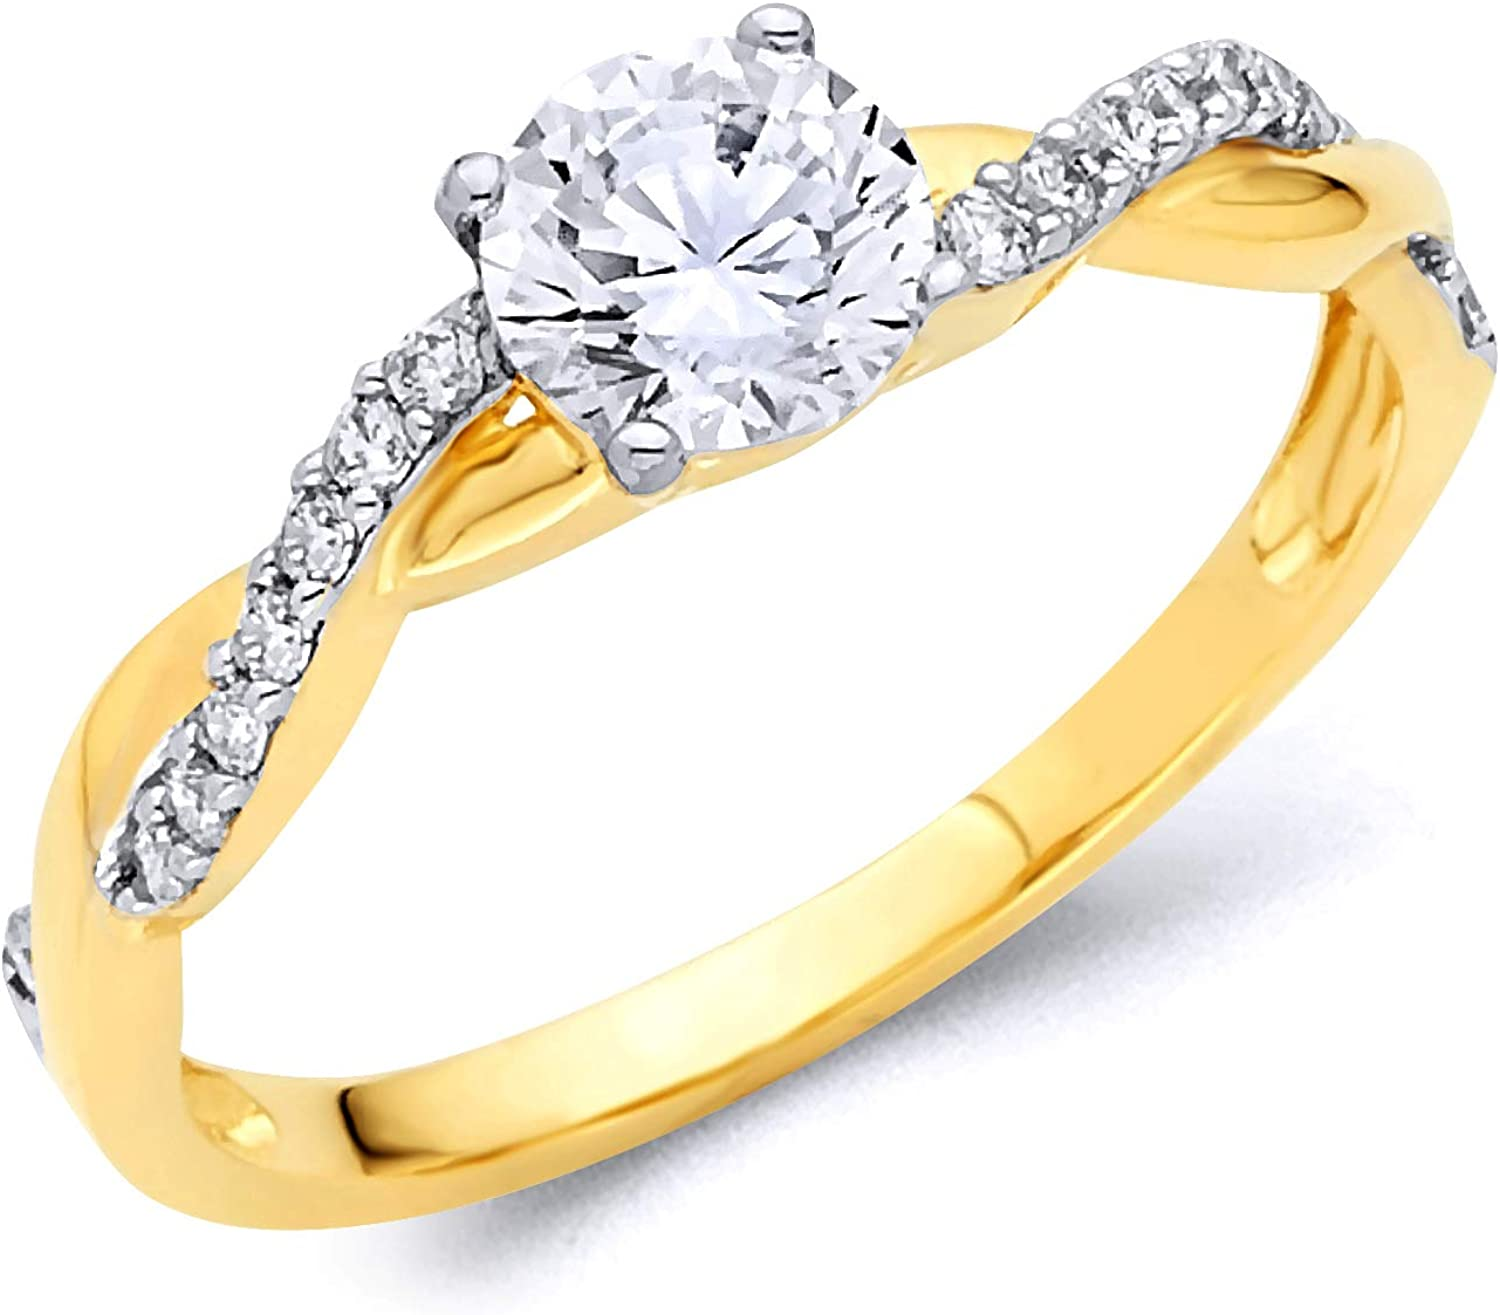 14k Yellow Gold SOLID NEW Popular brand before selling Ring Wedding Engagement